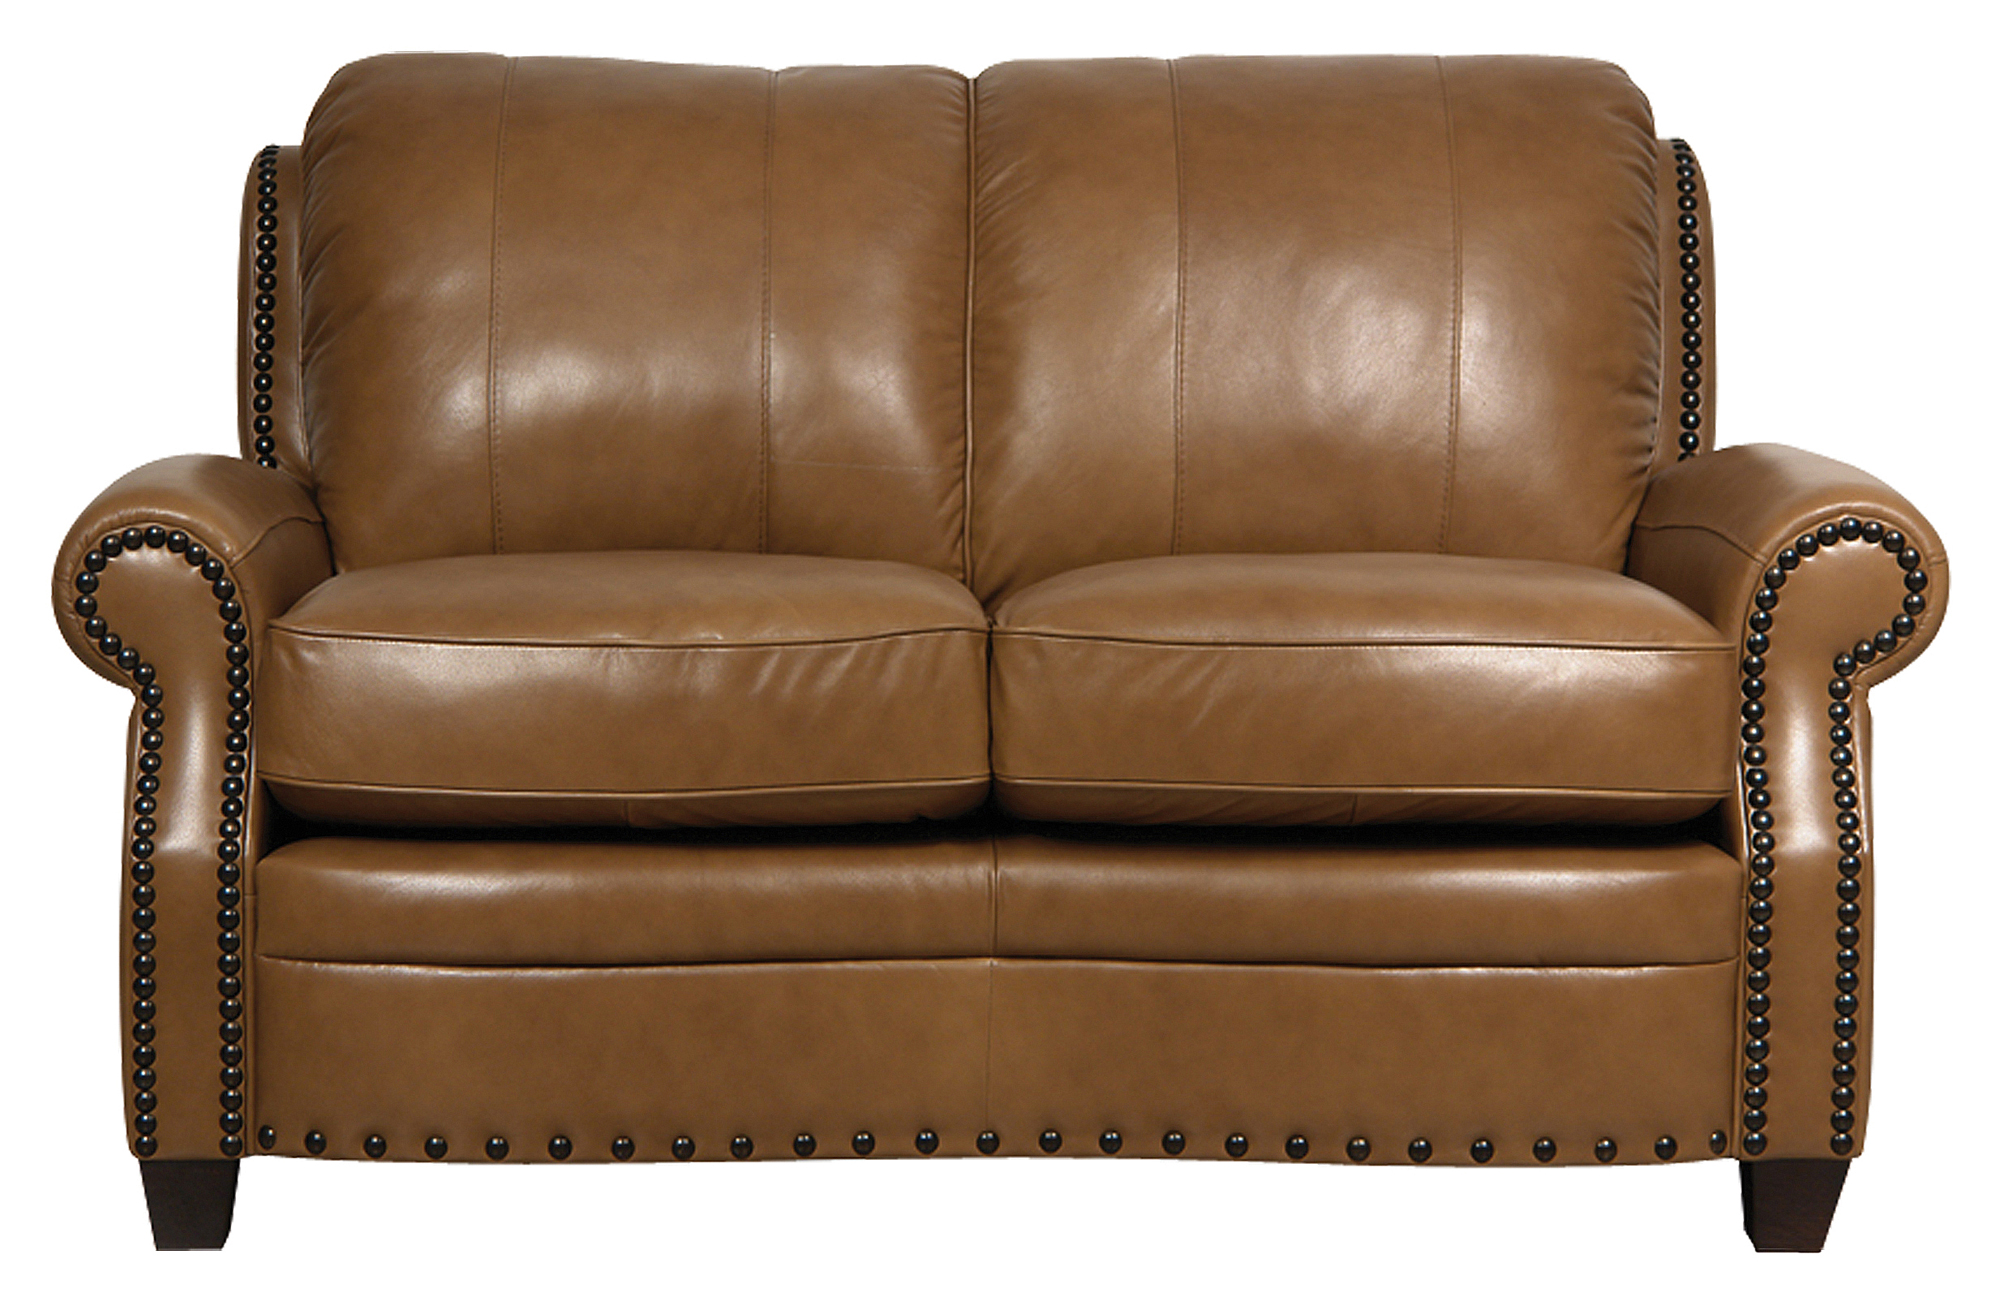 Bennett Group Luke Leather Furniture